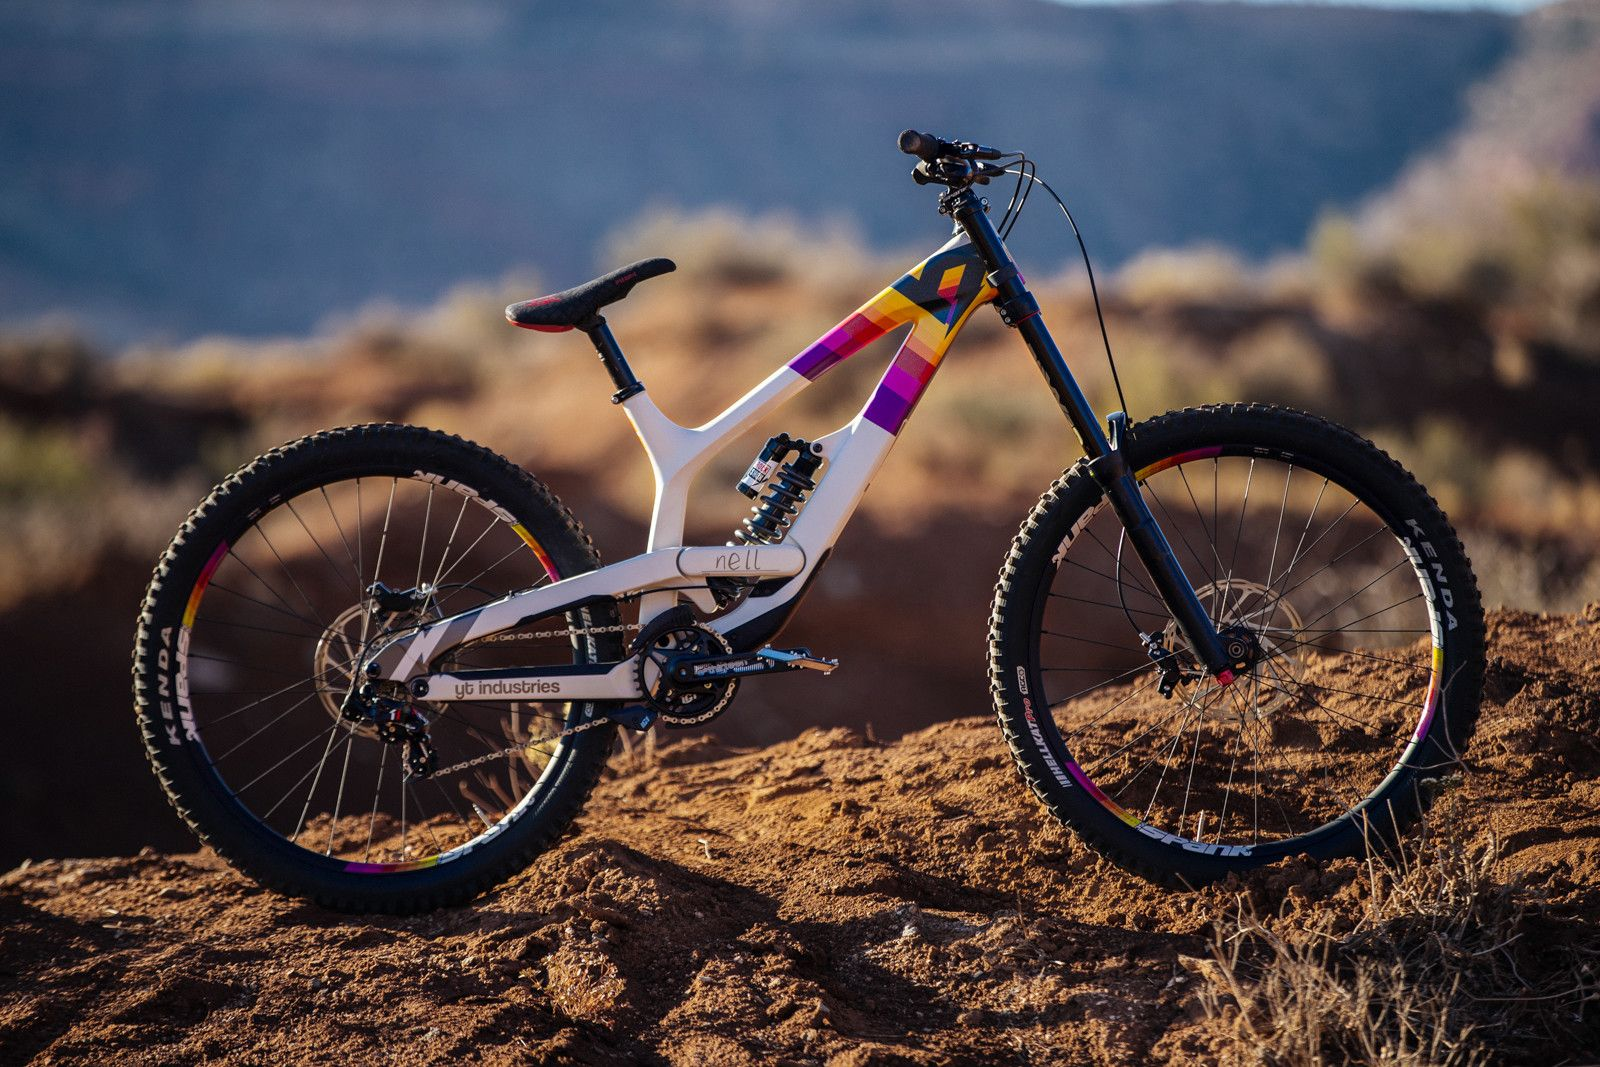 The Bikes Of Battle Red Bull Rampage Freeride Machines In 2020 Red Bull Rampage Freeride Bike